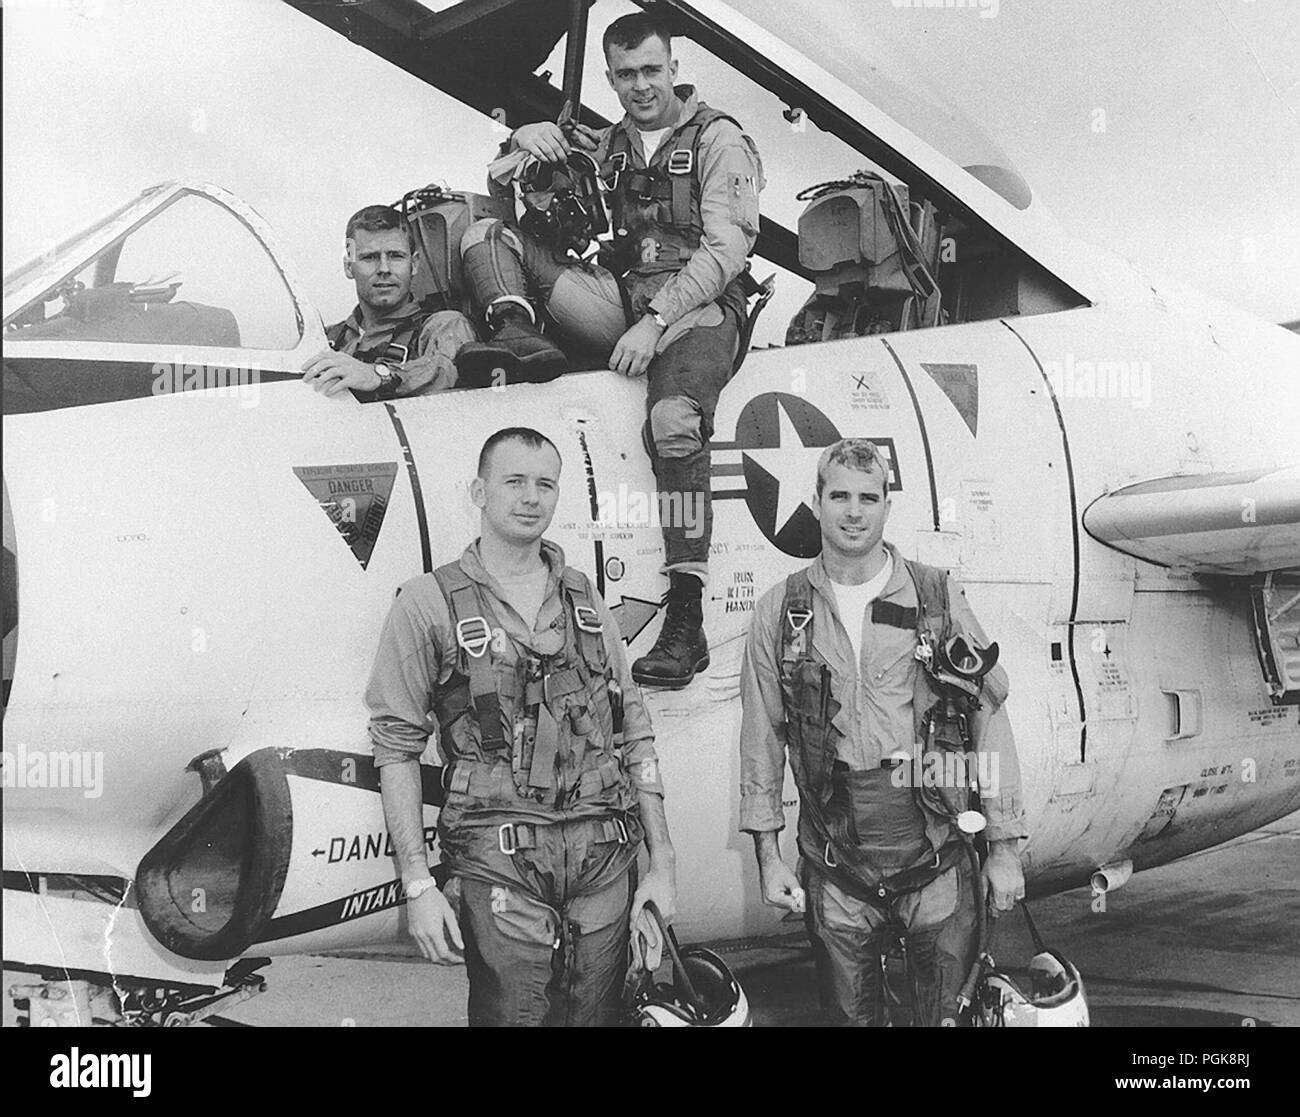 Undated U.S. Navy file photo of U.S. Navy Lieutenant John S. McCain III during flight training (bottom right). McCain who died from brain cancer on August 25, 2018 was an American politician and naval officer who served as a United States Senator from Arizona from 1987 until his death. He previously served two terms in the United States House of Representatives and was the Republican nominee for President of the United States in the 2008 election, which he lost to Barack Obama. - Stock Image